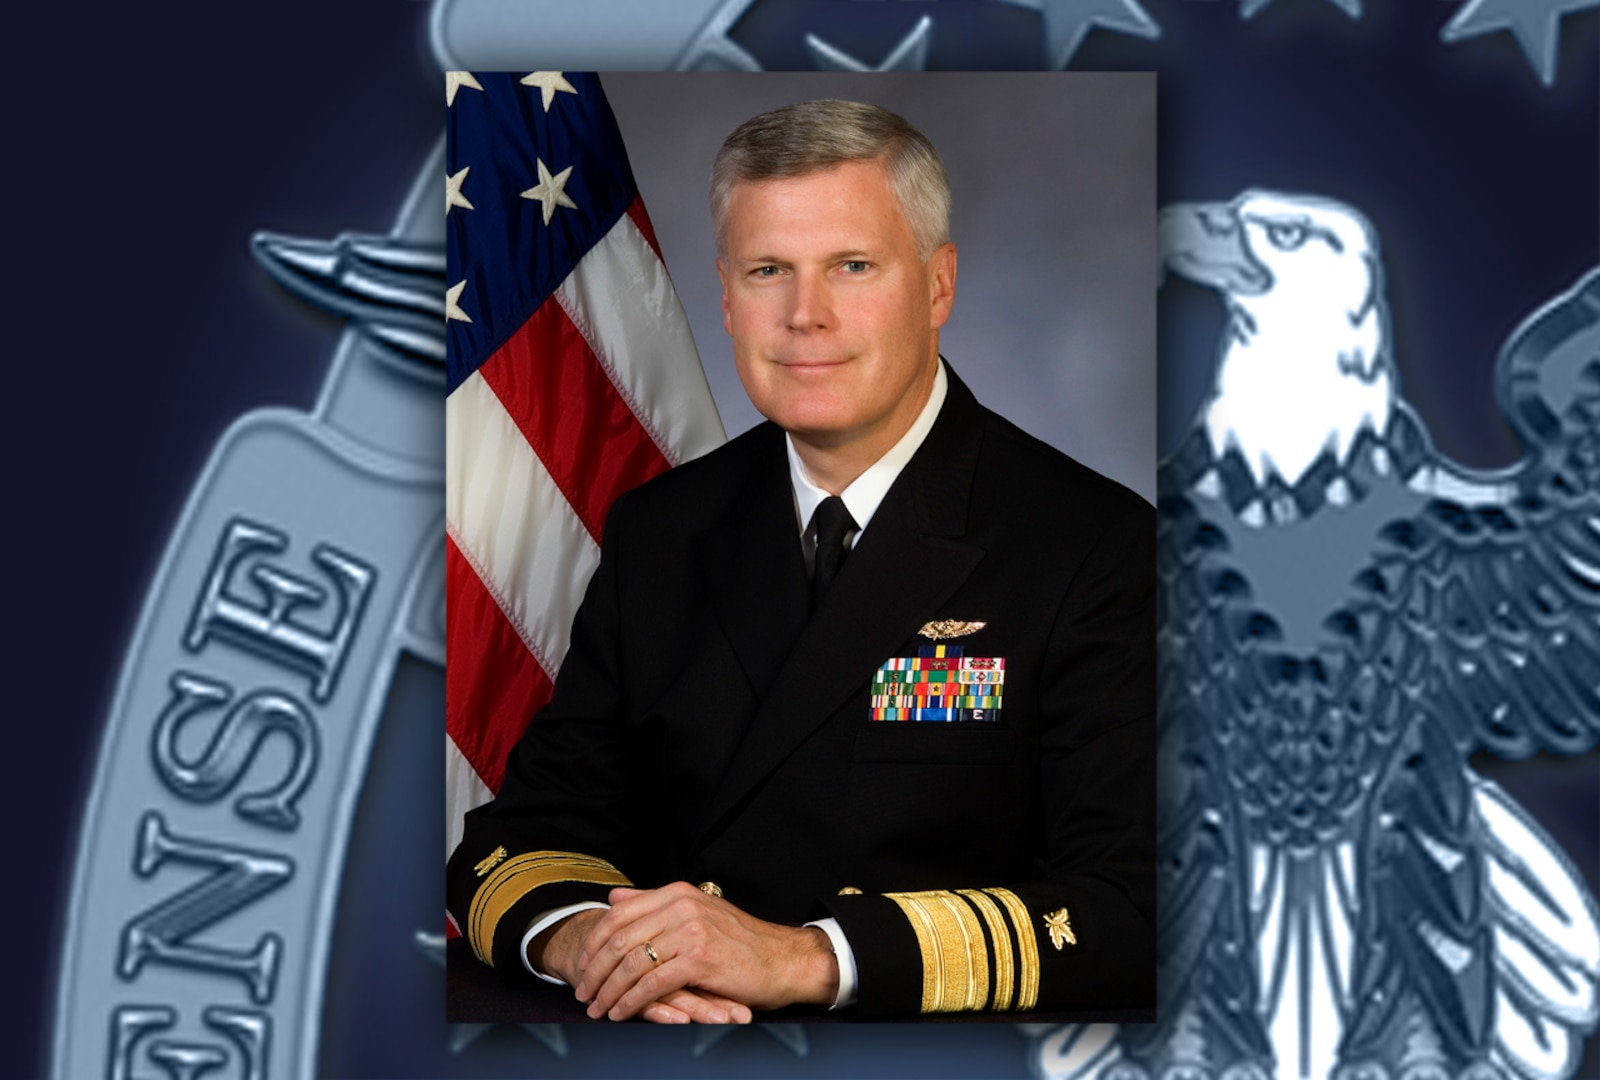 Retired Vice Adm. Al Thompson led DLA Land and Maritime just after 9/11 and took the helm of DLA in 2008.